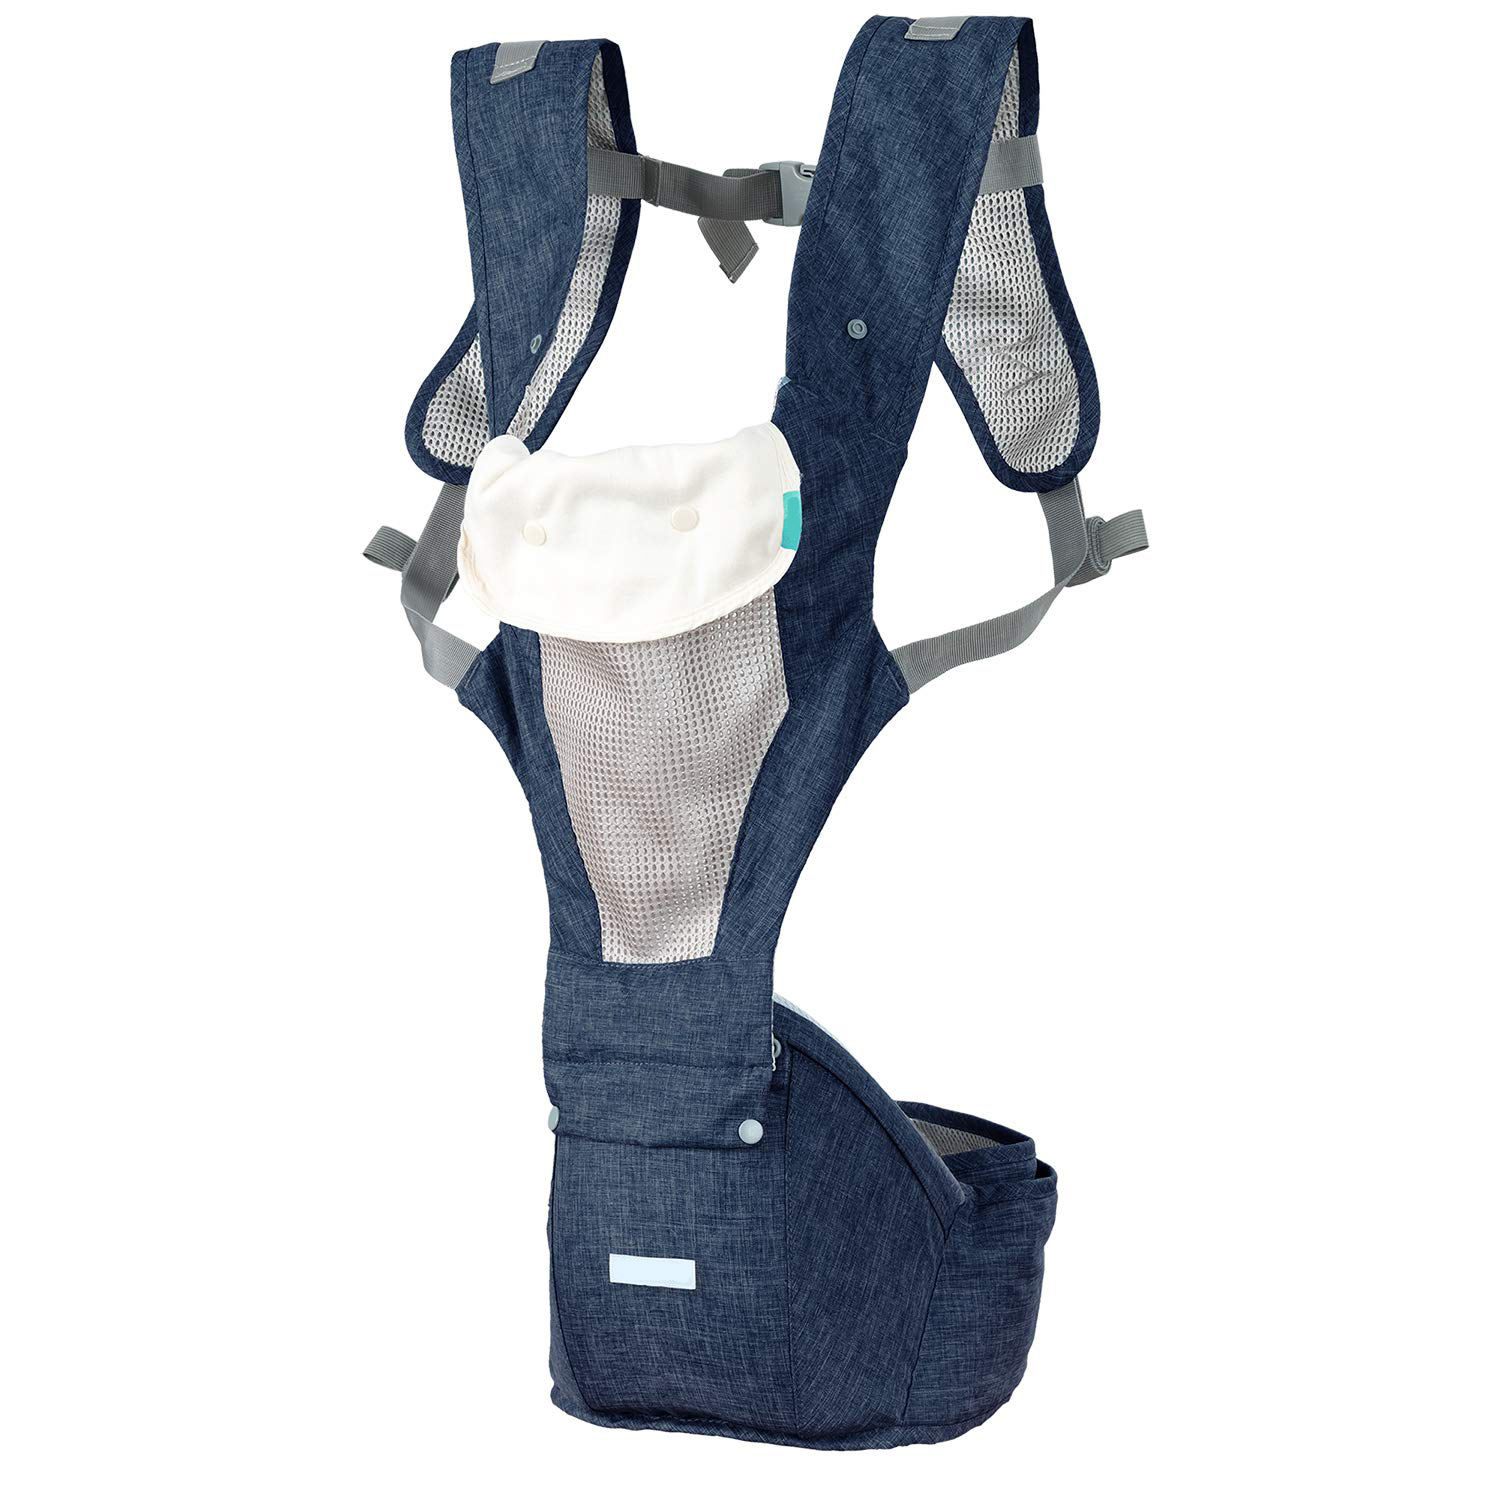 Classic Soft Baby Carrier with Adjustable Shoulder Straps and Waistband for Comfort,-Navy Blue with Bib